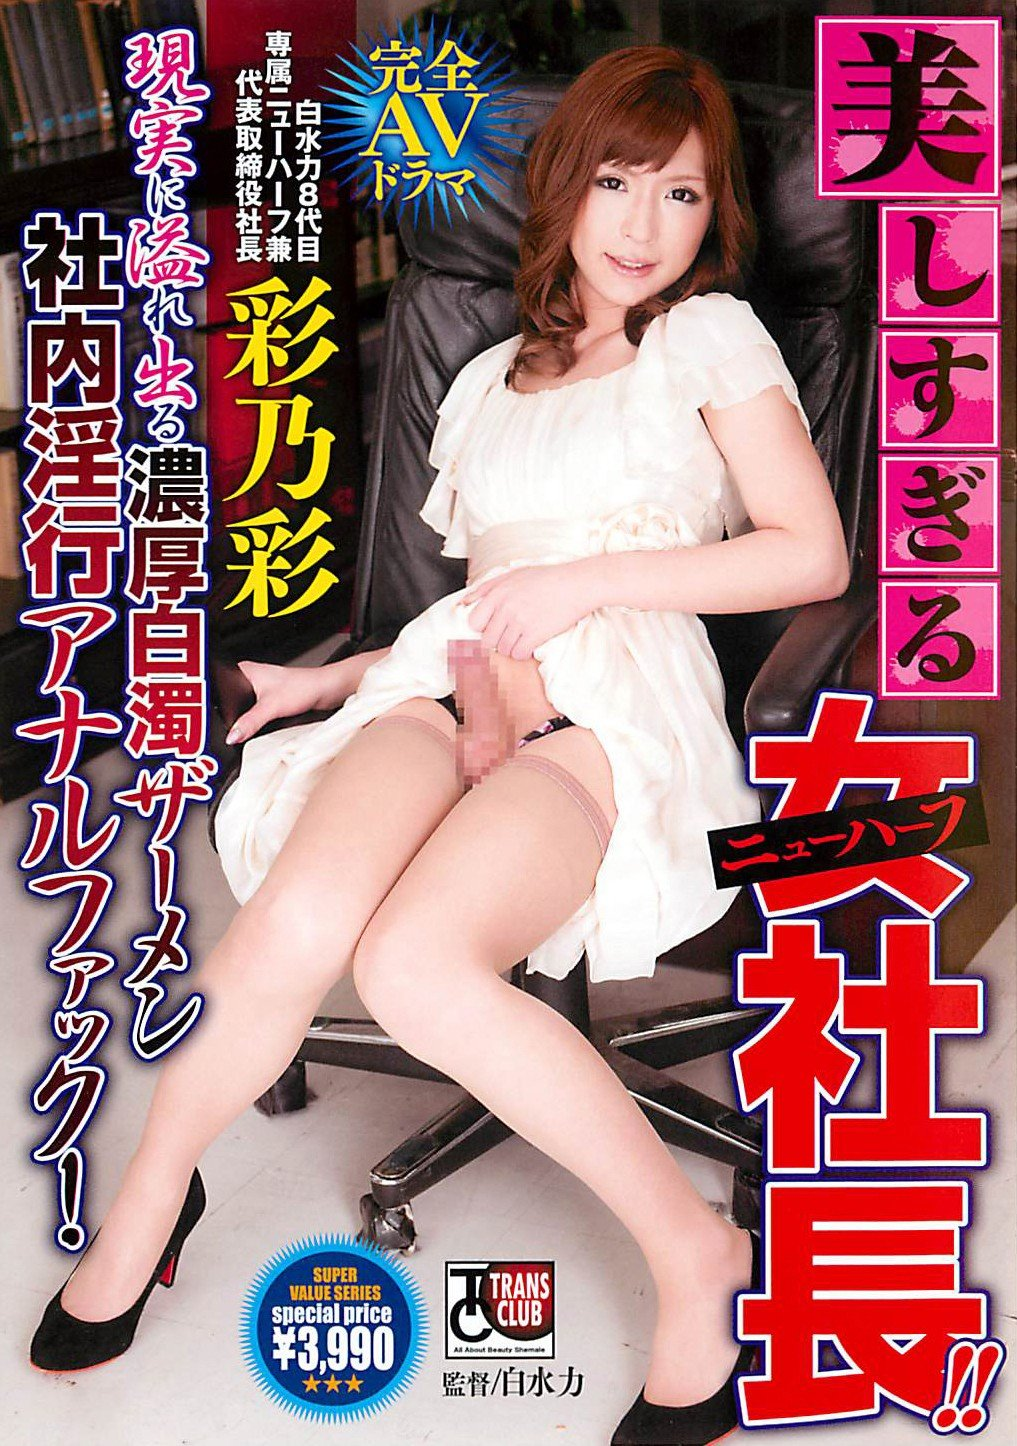 Real Woman Porn Shemale Japan